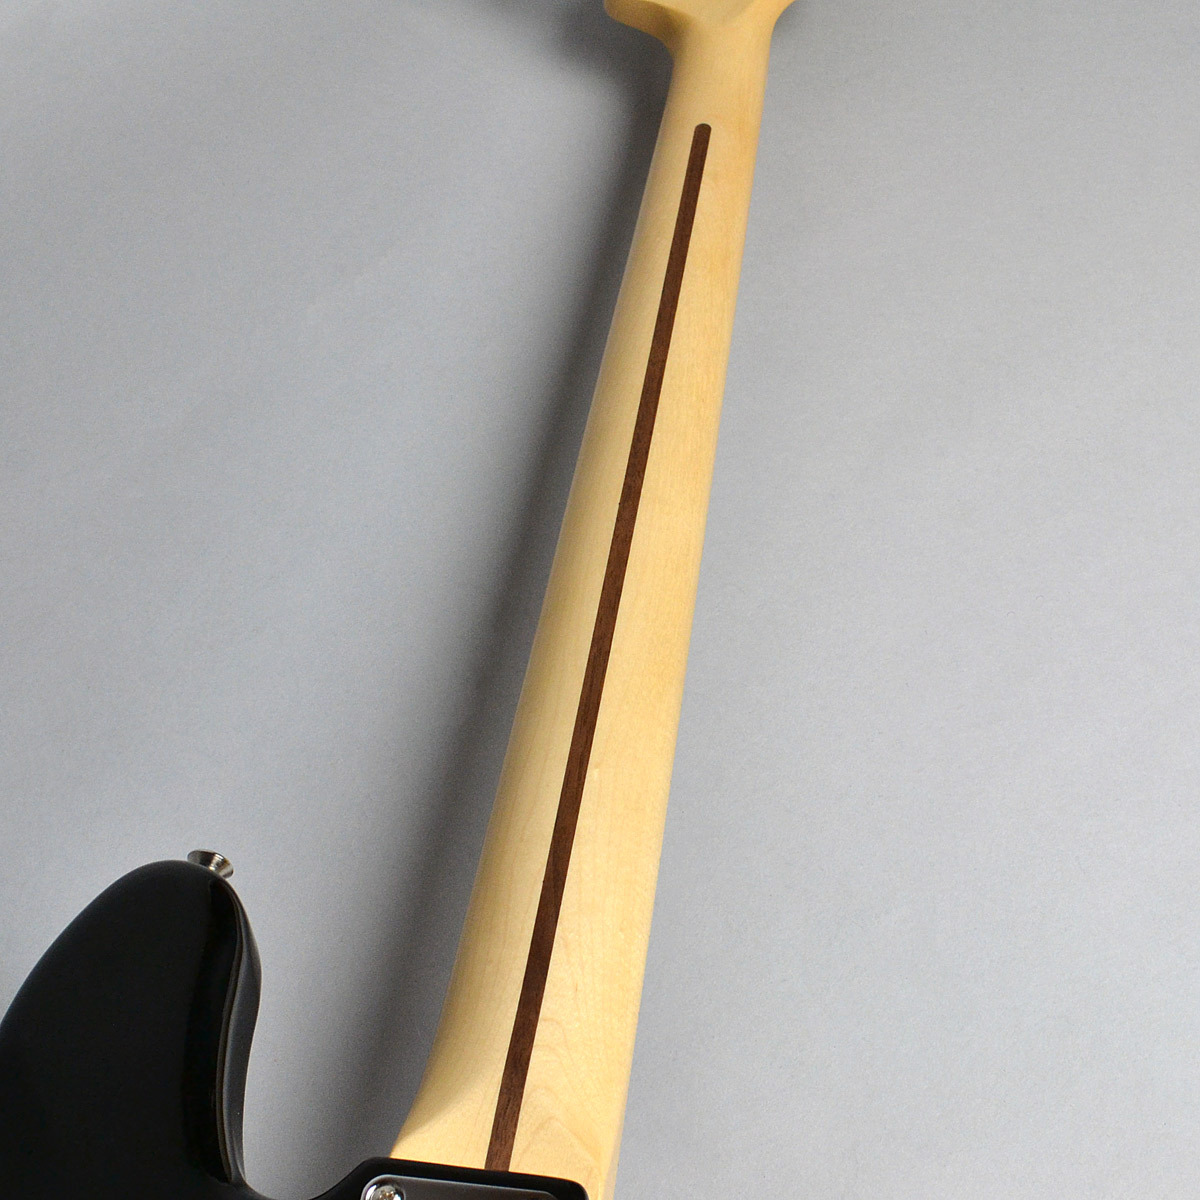 USED Player Series Jazz Bass Left Handed / Blackのケース・その他画像